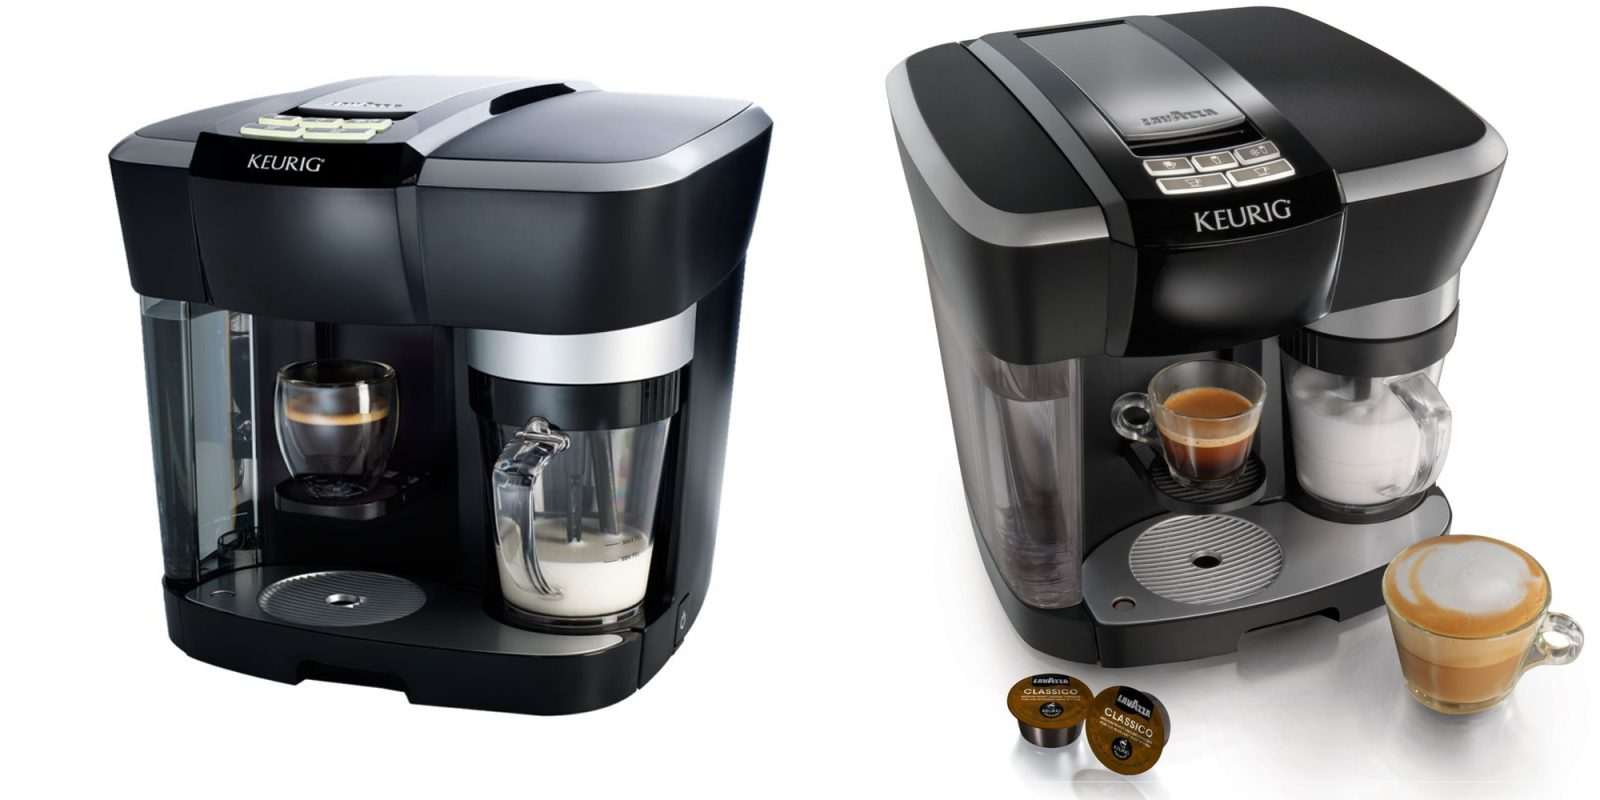 Keurig Rivo Cappuccino And Latte System For 99 Shipped Reg 140